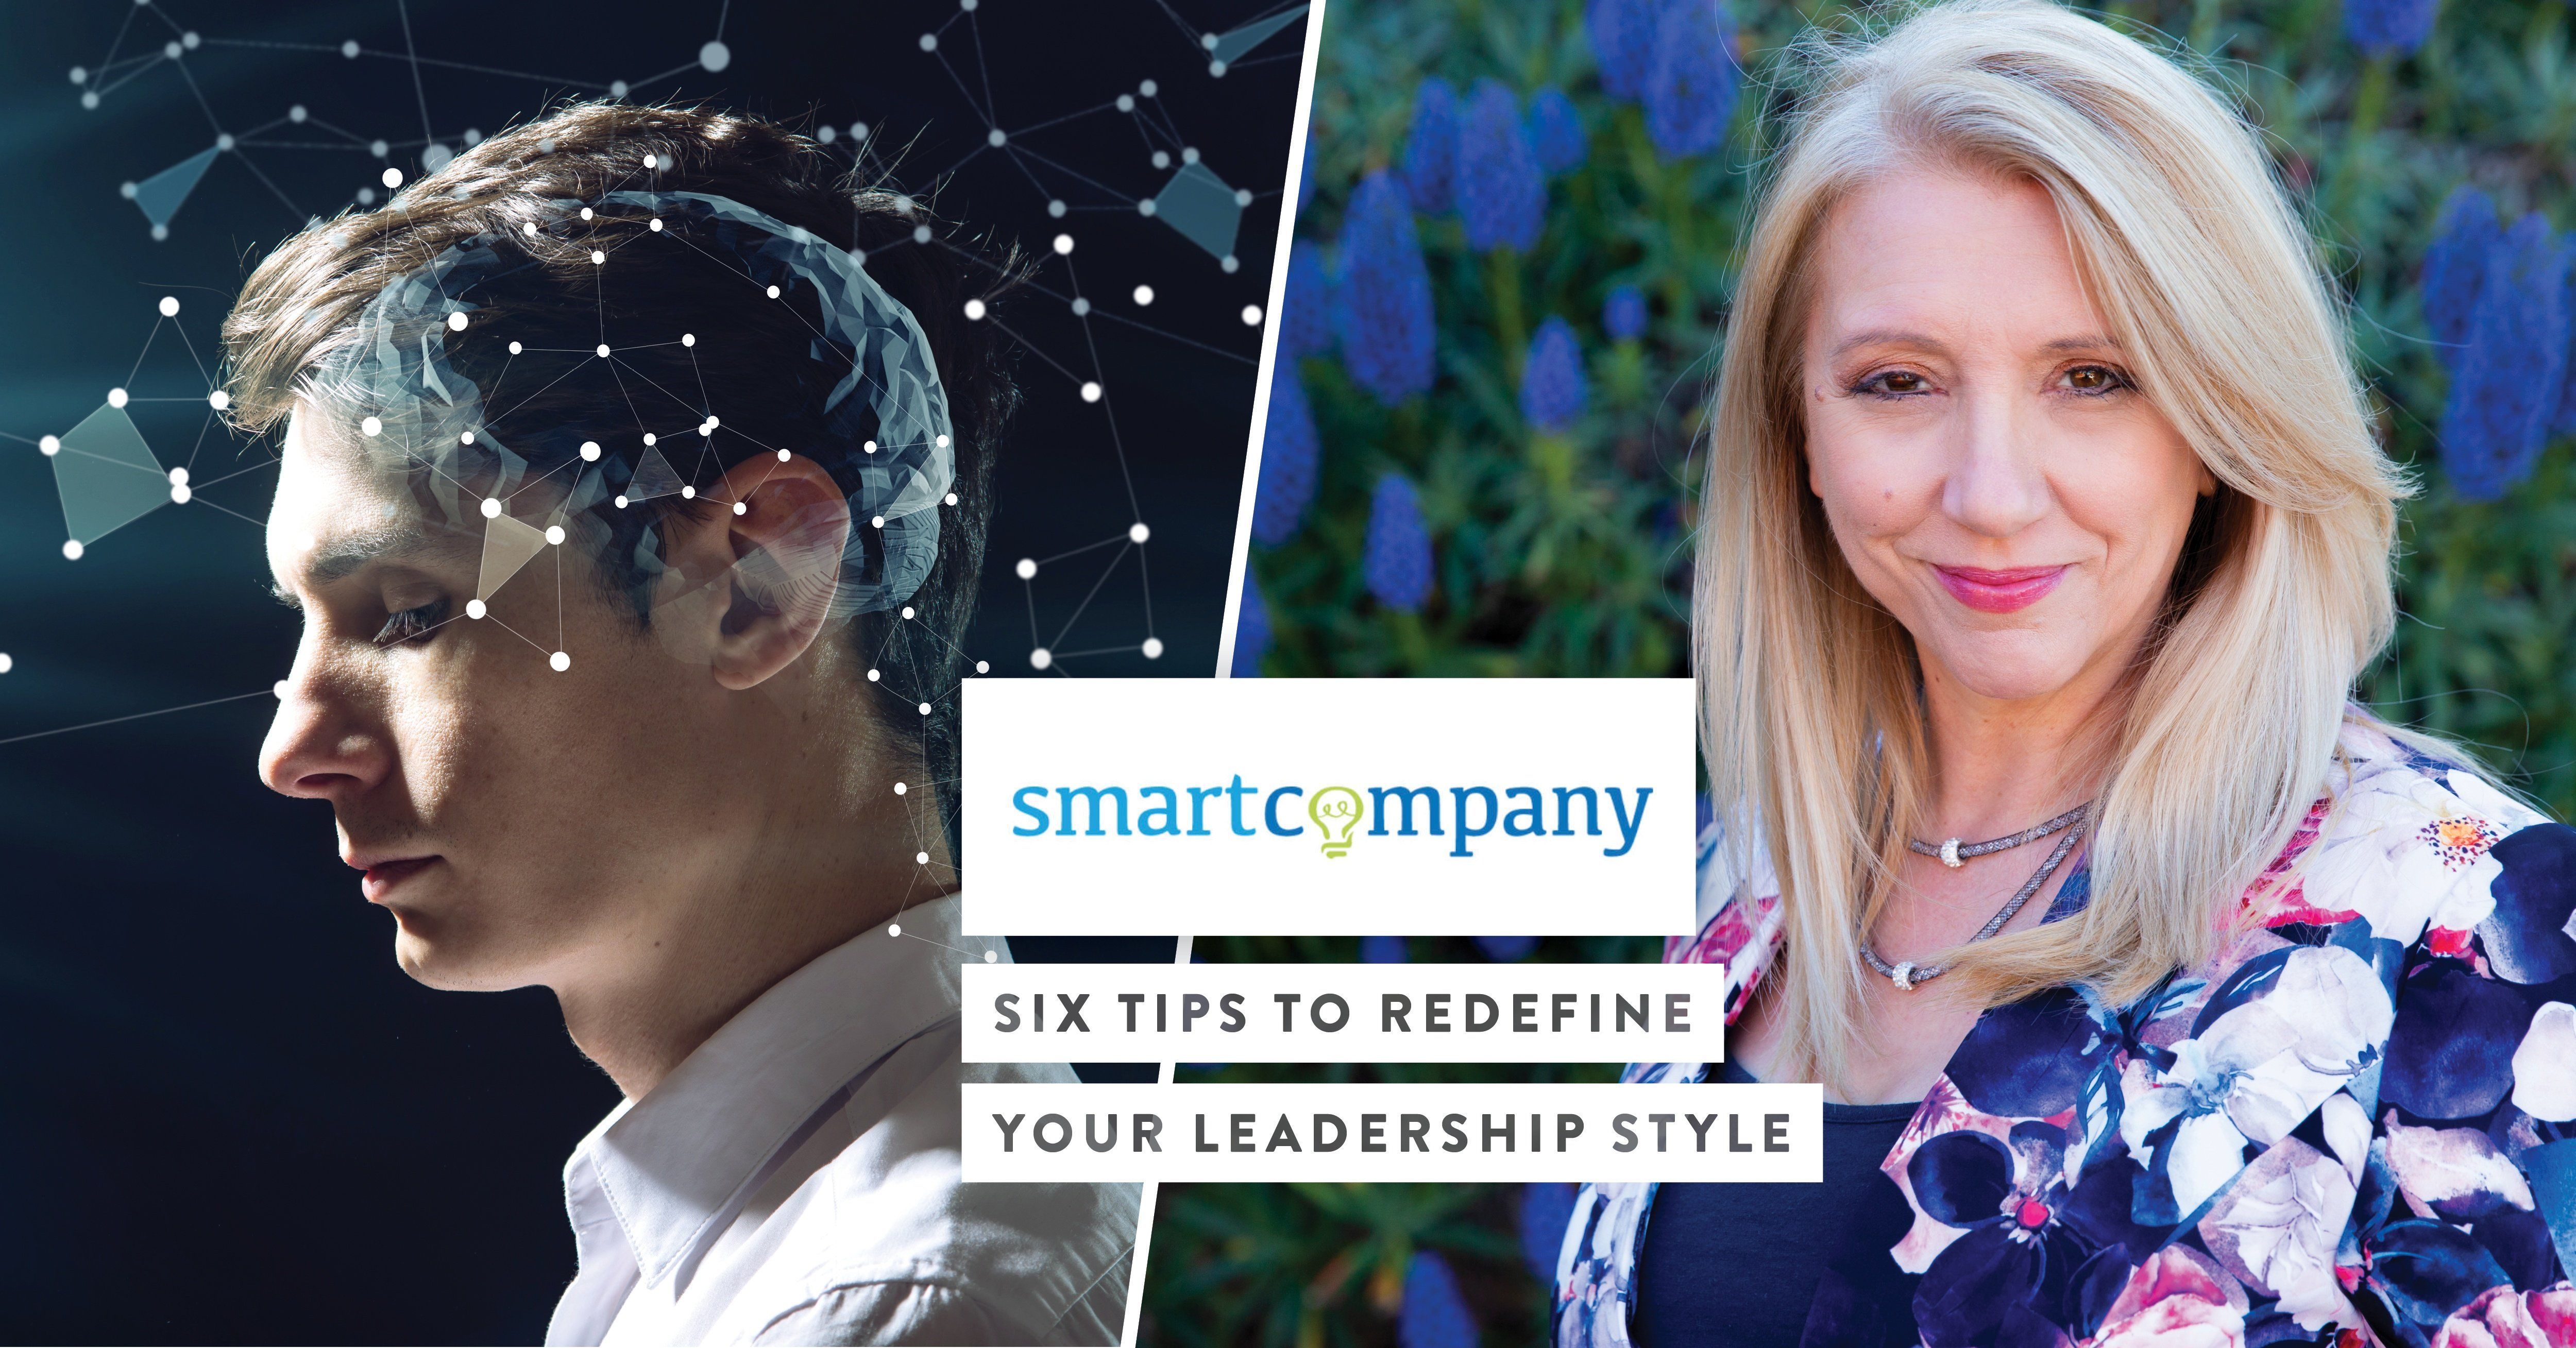 Smart Company: Six Tips To Redefine Your Leadership Style